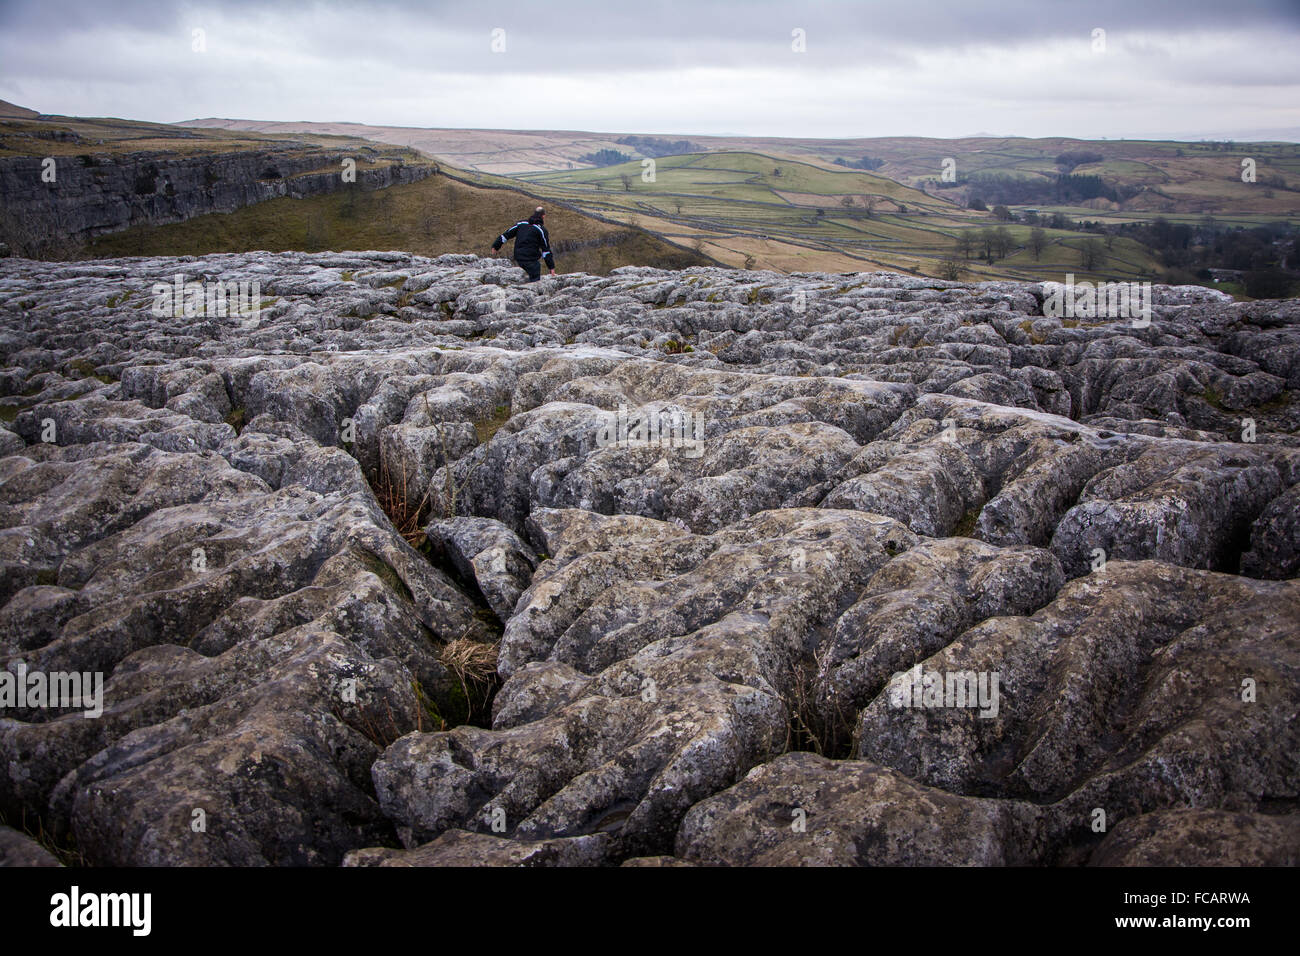 Geological rock formations on Malham Cove in the Yorkshire Dales - Stock Image